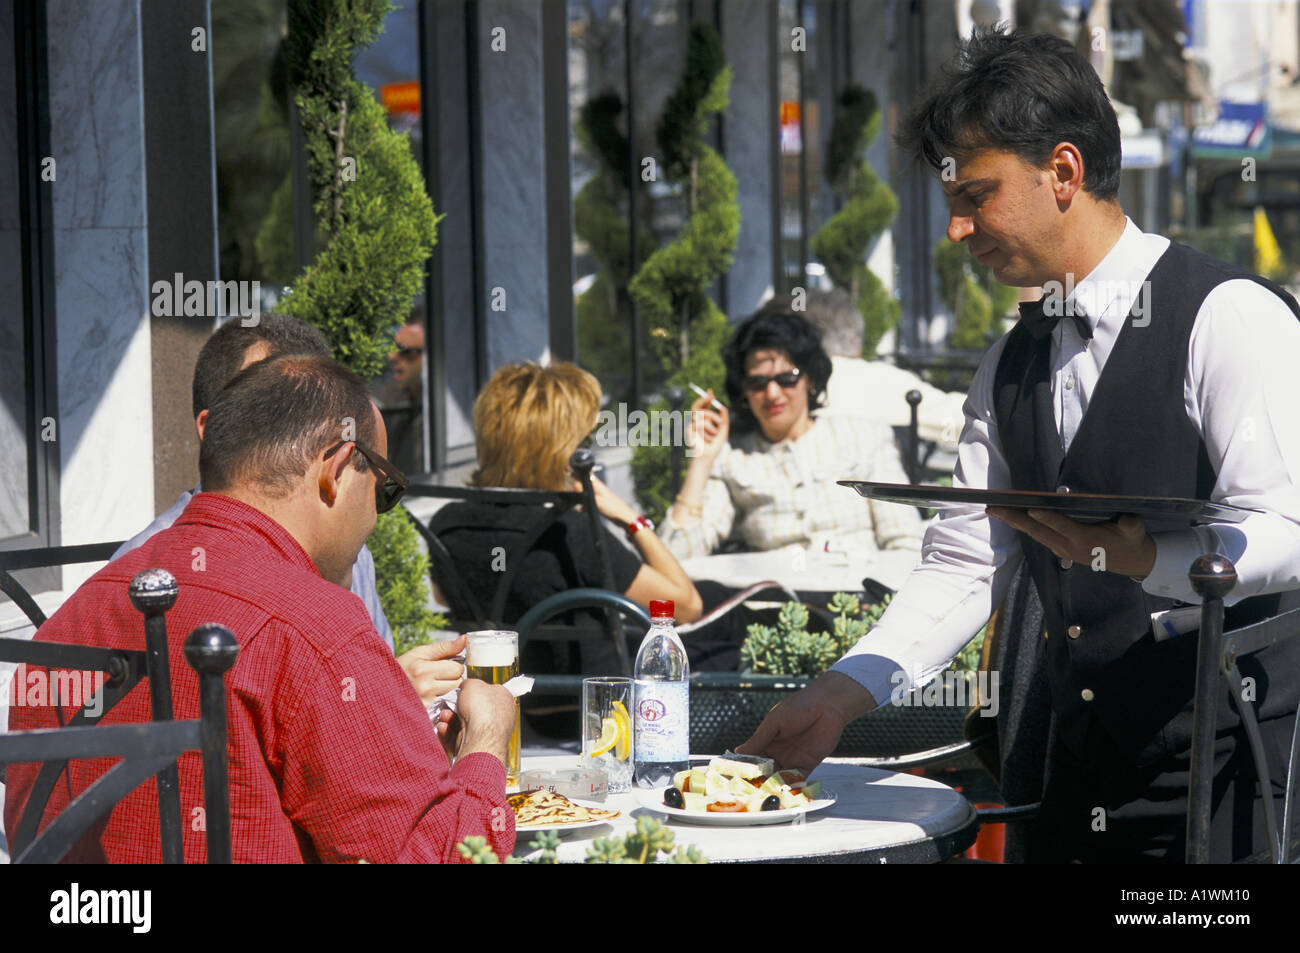 WAITER SERVING CUSTOMERS SITTING AT CAFE TABLE IN THE PIAZZA TIRANA 2001 - Stock Image